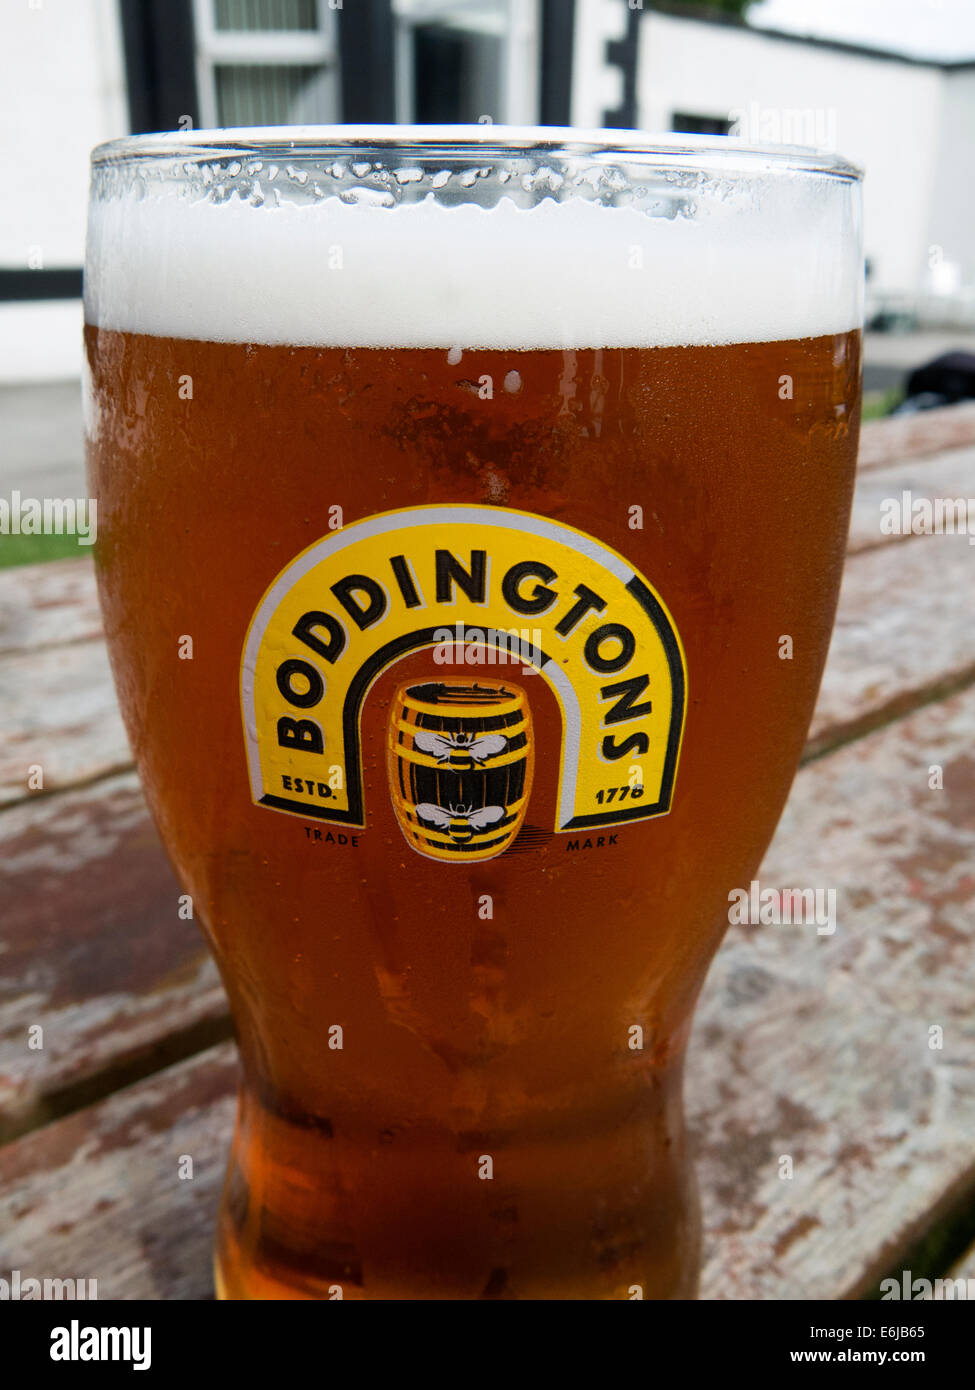 with,a,head,withahead,beer,Boddington,regional,ale,brewed,in,Mossside,pint,glass,boddies,hoppy,widget,draught-style,draught,style,cream,brewing,co,company,Strangeways,whitbread,Anheuser–Busch,InBev,outside,on,a,bench,table,wood,wooden,cask,conditioned,Pub,barrel,regional,national,Madchester,Gotonysmith,the,of,creamOfManchester,bee,bees,logo,city,product,NW,England,UK,GB,Great,britain,Anheuser,Busch,Hydes,Brewery,in,Moss,Side,Kestrel,kegging,facility,prison,HMP,demolished,blandly,foamy,nitrokeg,travesty,of,the,original,version,Buy Pictures of,Buy Images Of